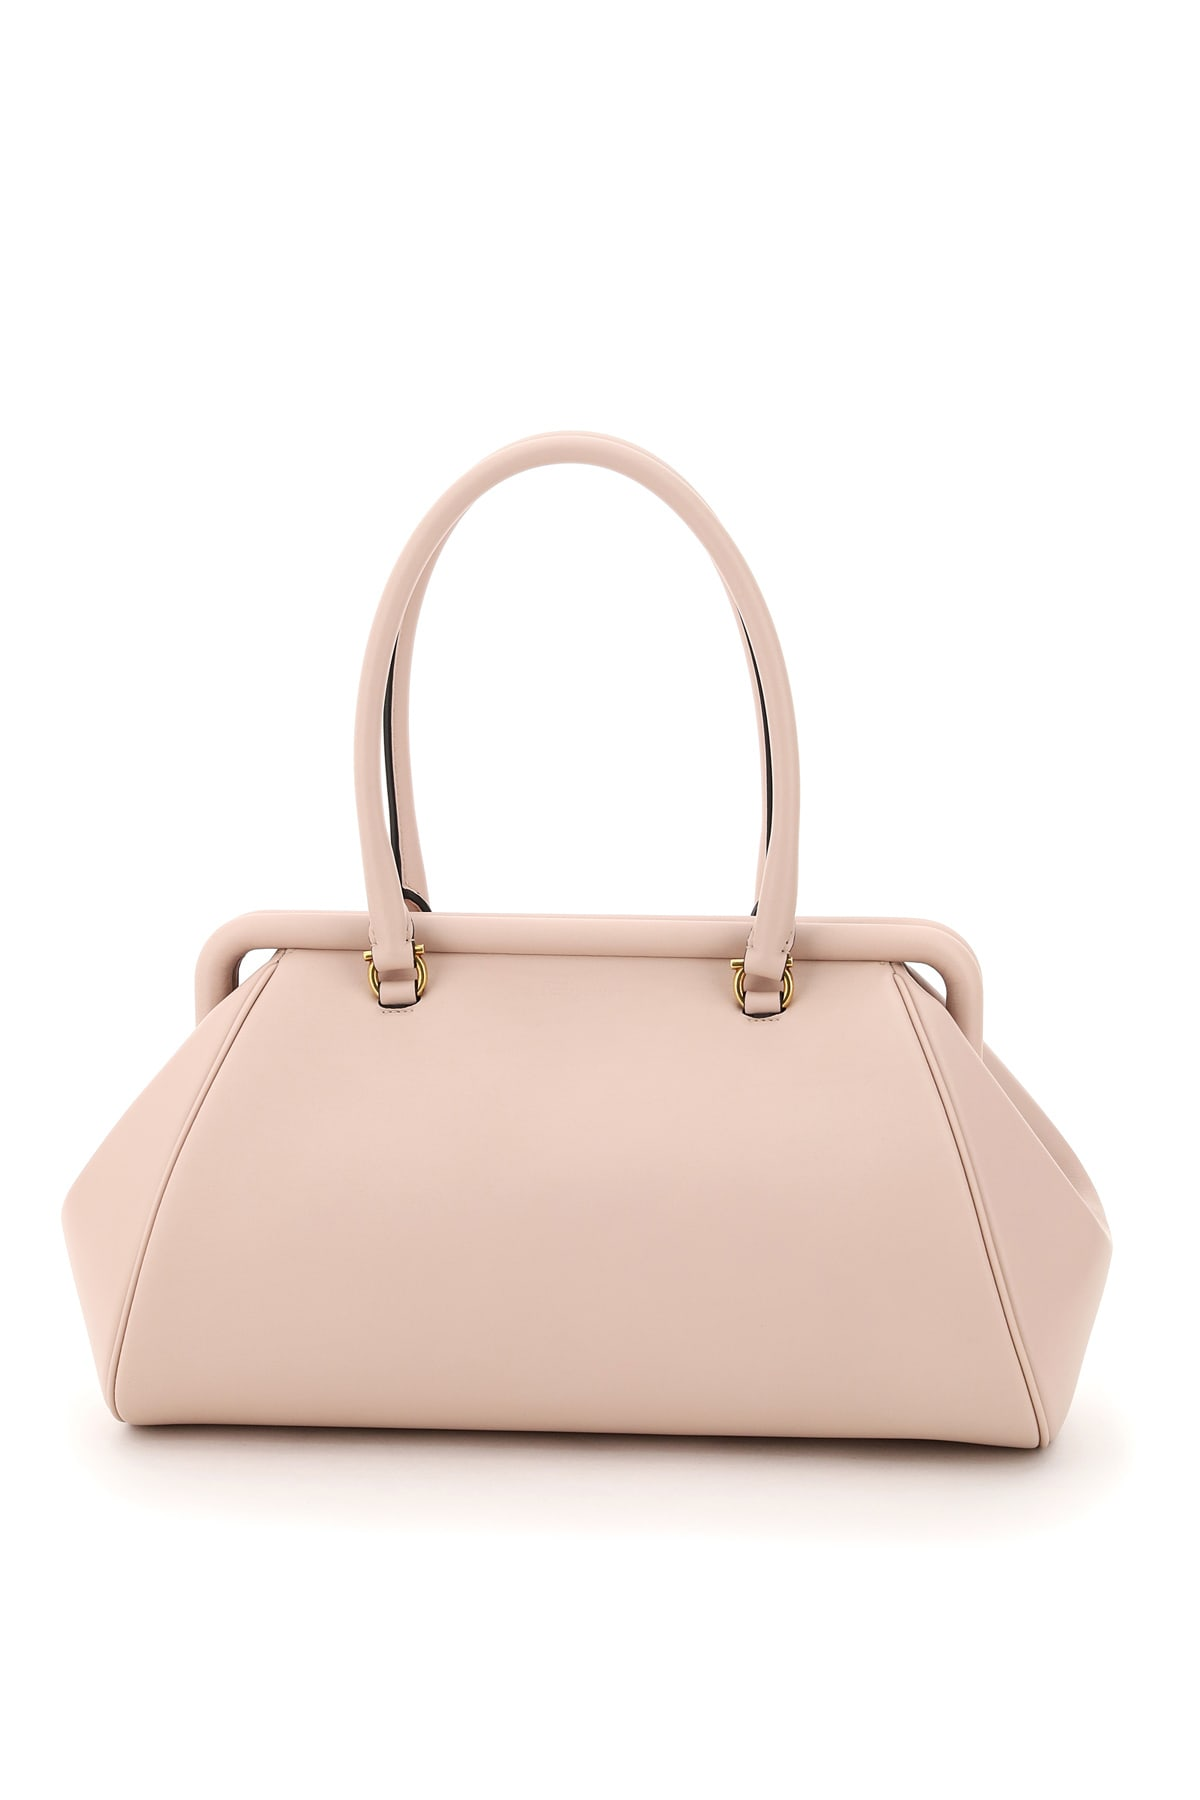 Salvatore Ferragamo Frame Shoulder Bag